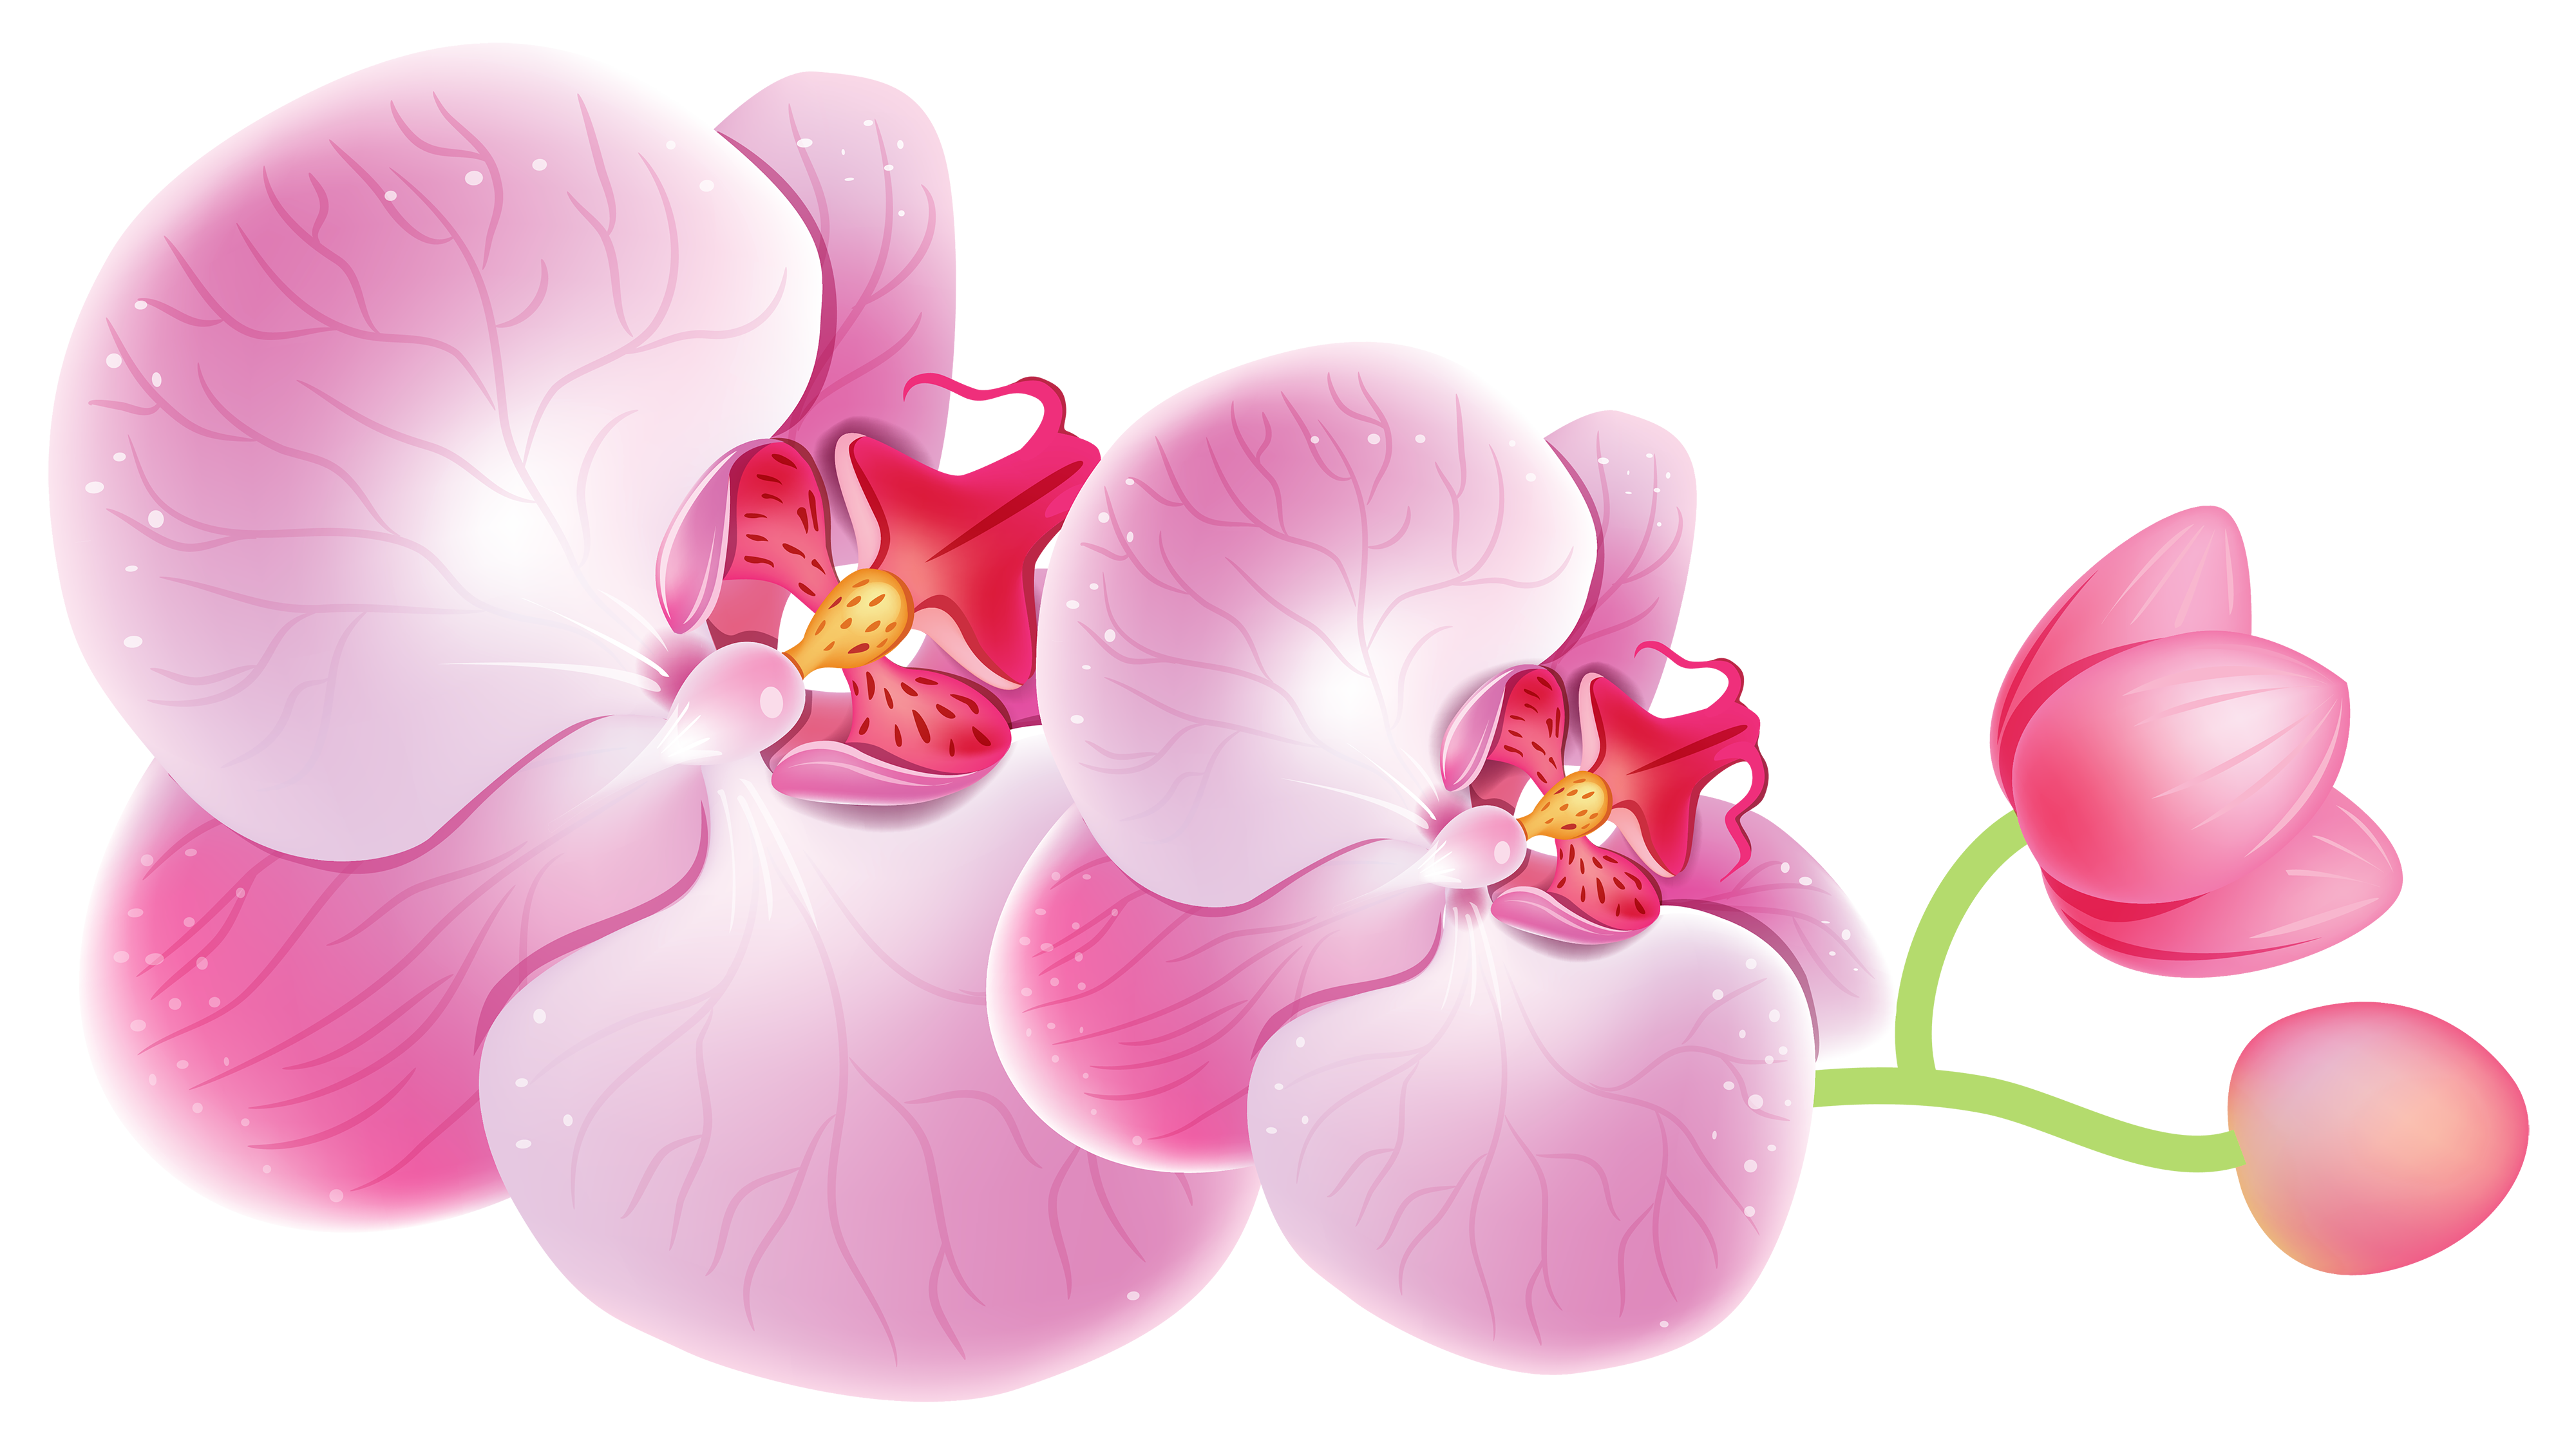 Orchid Flower Clipart | Free download on ClipArtMag